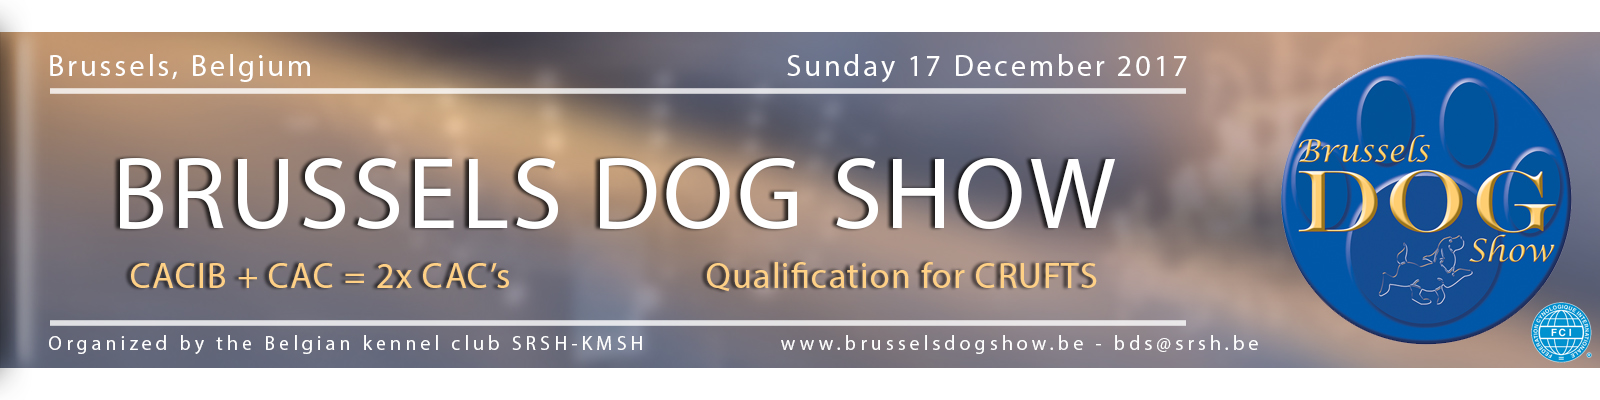 Brussels Dog Show - Sunday 17/12/2017